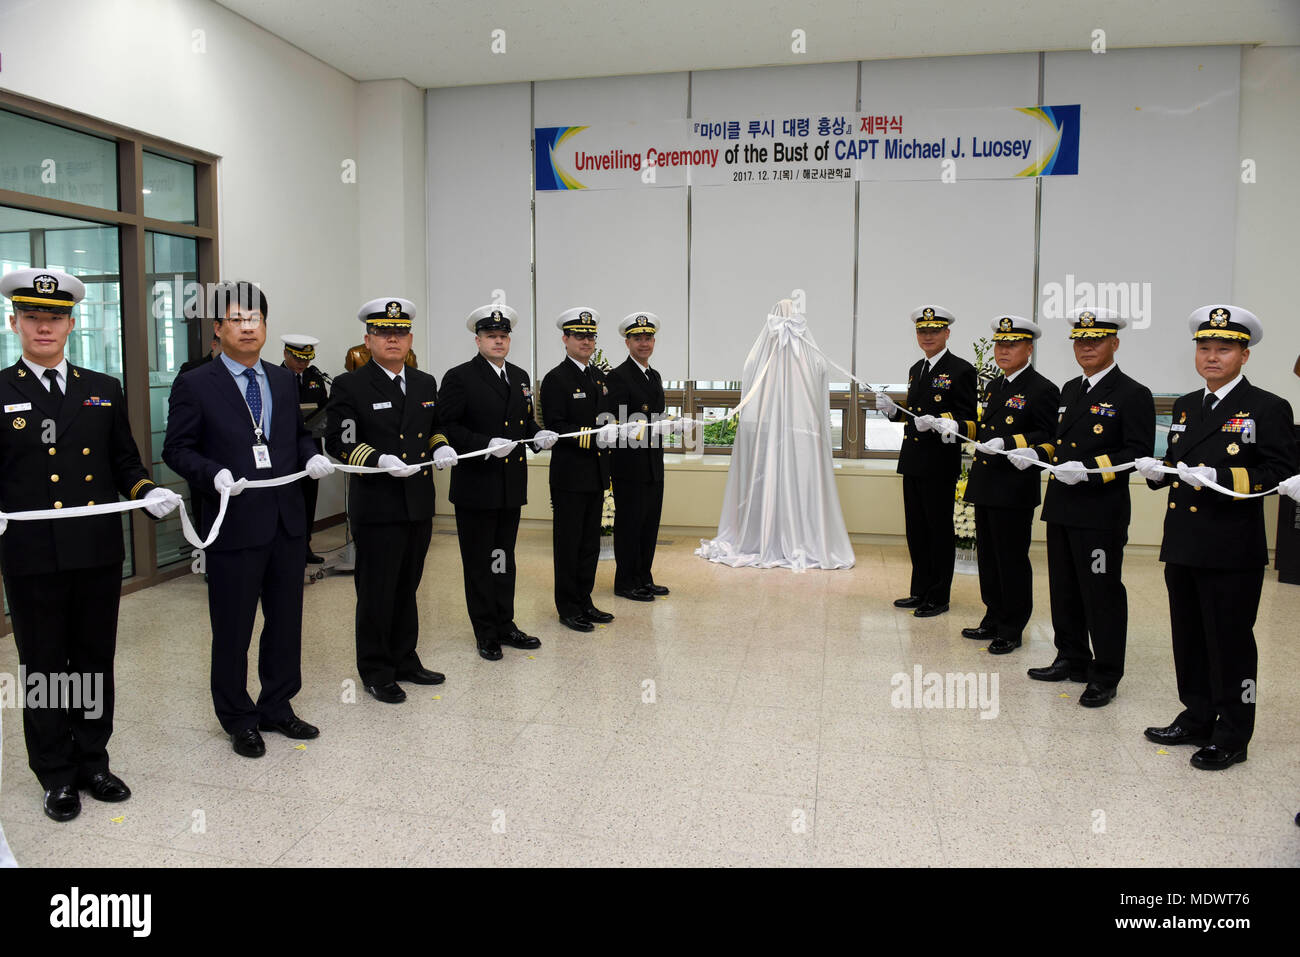 171207-N-TB148-048 CHINHAE, Republic of Korea (Dec. 07, 2017) Rear Adm. Brad Cooper, commander, U.S. Naval Forces Korea (CNFK), attends the unveiling of the Capt. Michael Lousey memorial bust unveiling ceremony at Republic of Korea (ROK) Naval Academy in Chinhae. CNFK is the U.S. Navy's representative in the ROK, providing leadership and expertise in naval matters to improve institutional and operational effectiveness between the two navies and to strengthen collective security efforts in Korea and the region. (U.S. Navy photo by Mass Communication Specialist Seaman William Carlisle) Stock Photo